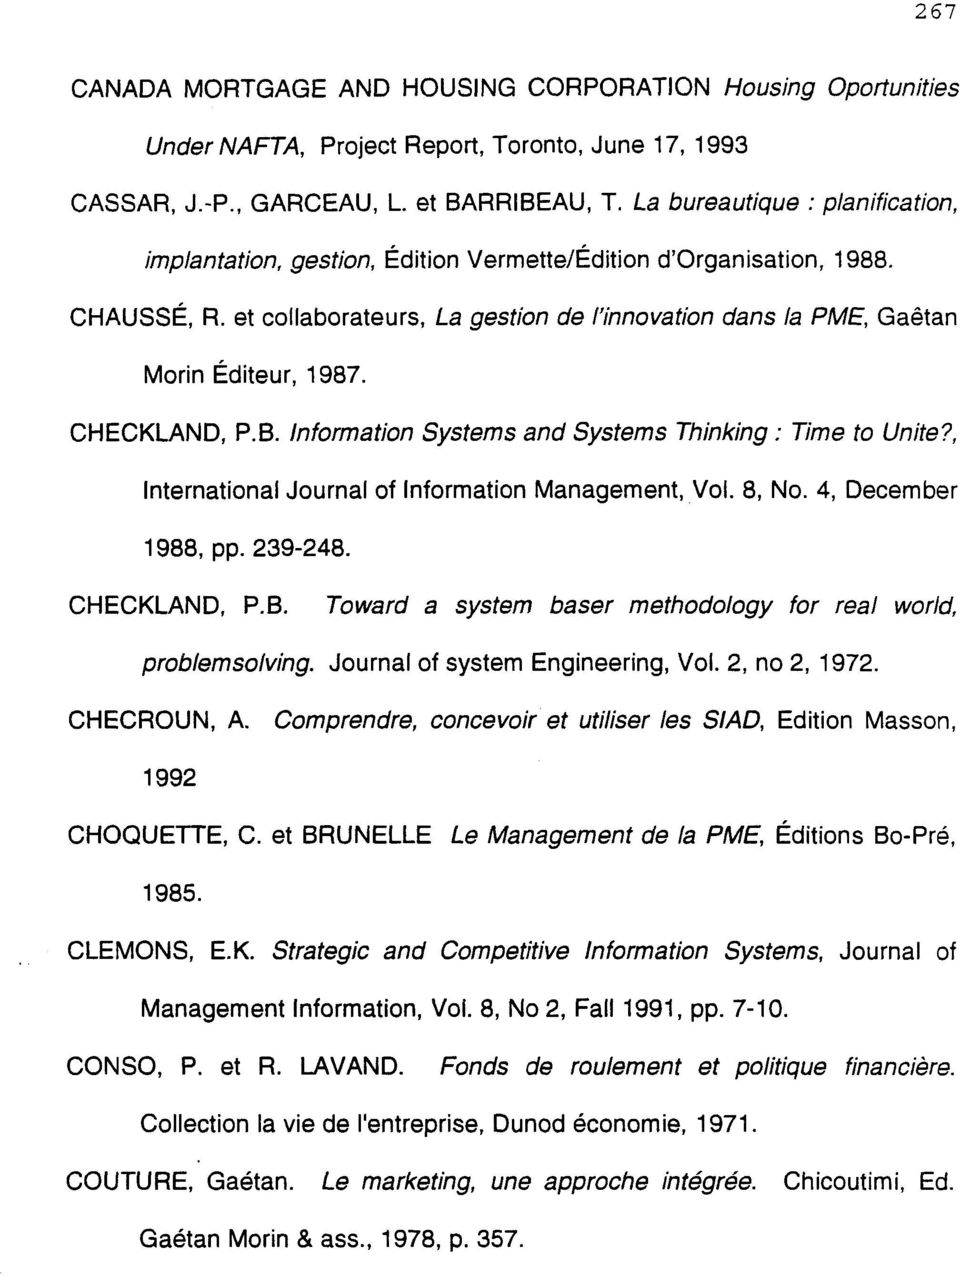 CHECKLAND, P.B. Information Systems and Systems Thinking : Time to Unite?, International Journal of Information Management, Vol. 8, No. 4, December 1988, pp. 239-248. CHECKLAND, P.B. Toward a system baser methodology for real world, problemsolving.